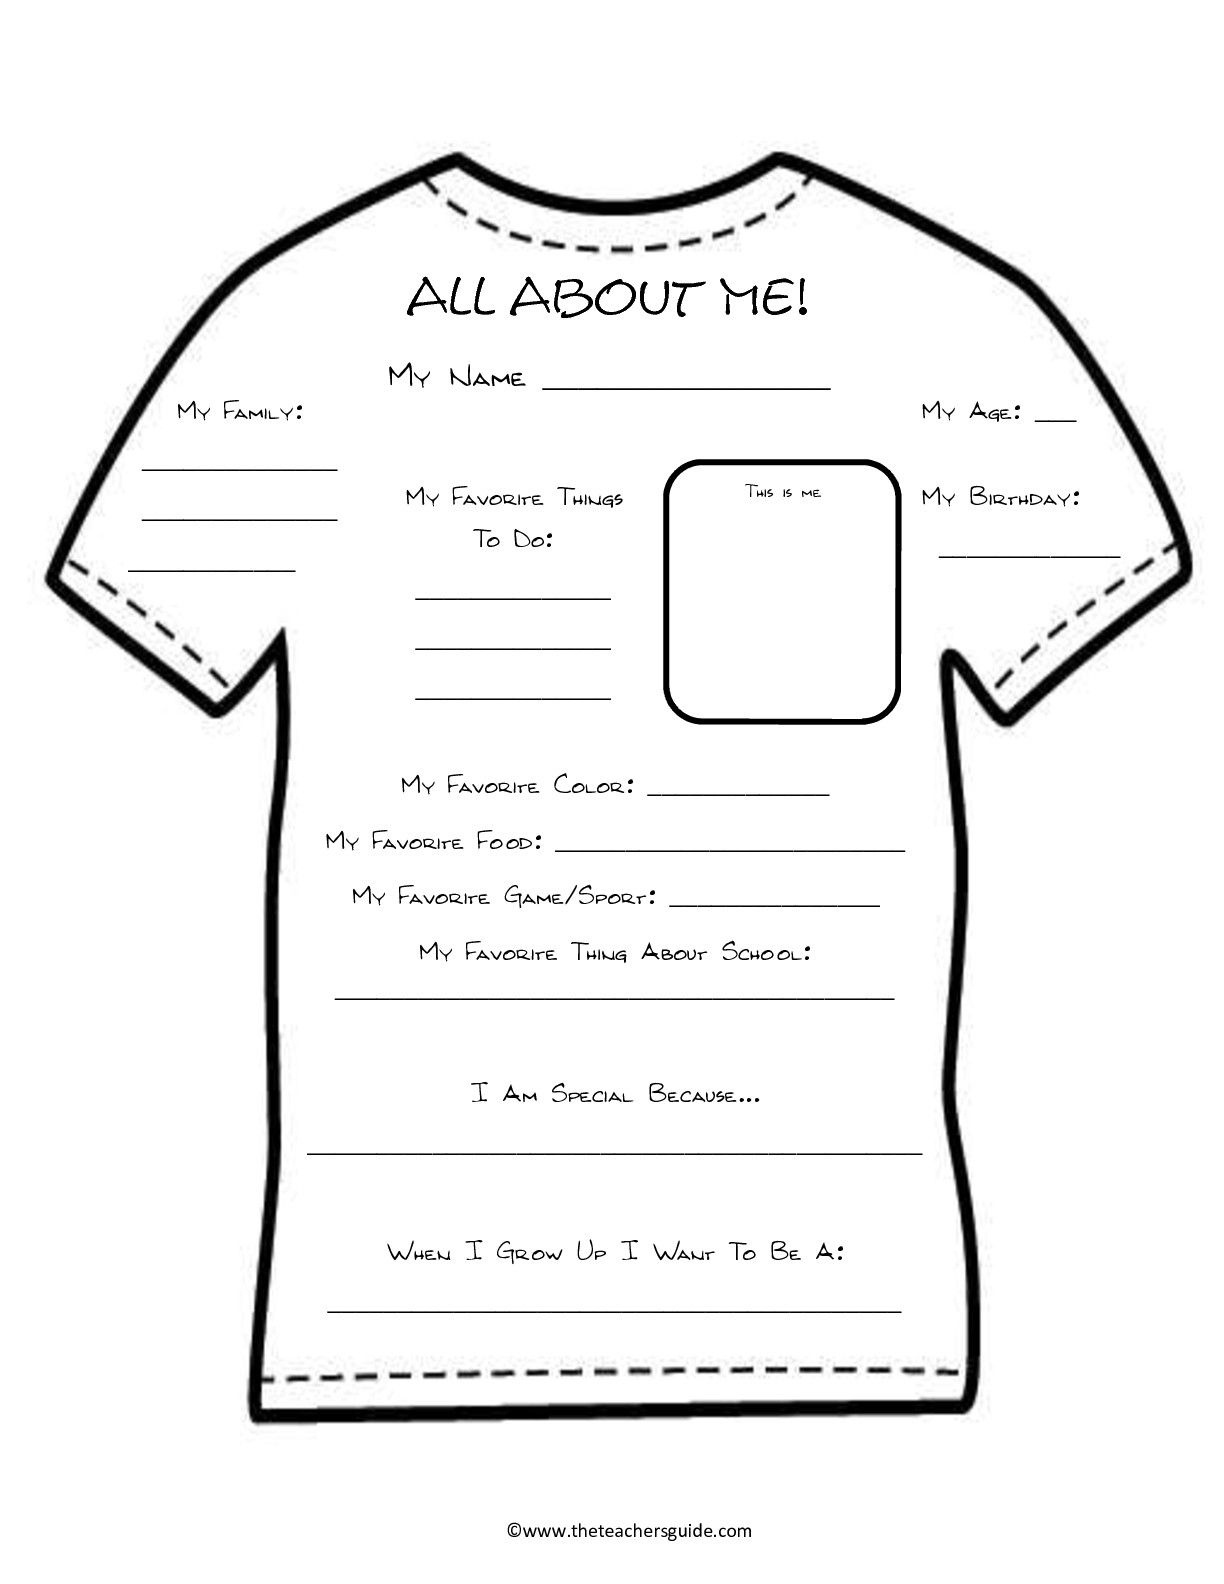 All About Me Template Worksheet | 1St Days Of School | All About Me - Free Printable All About Me Poster